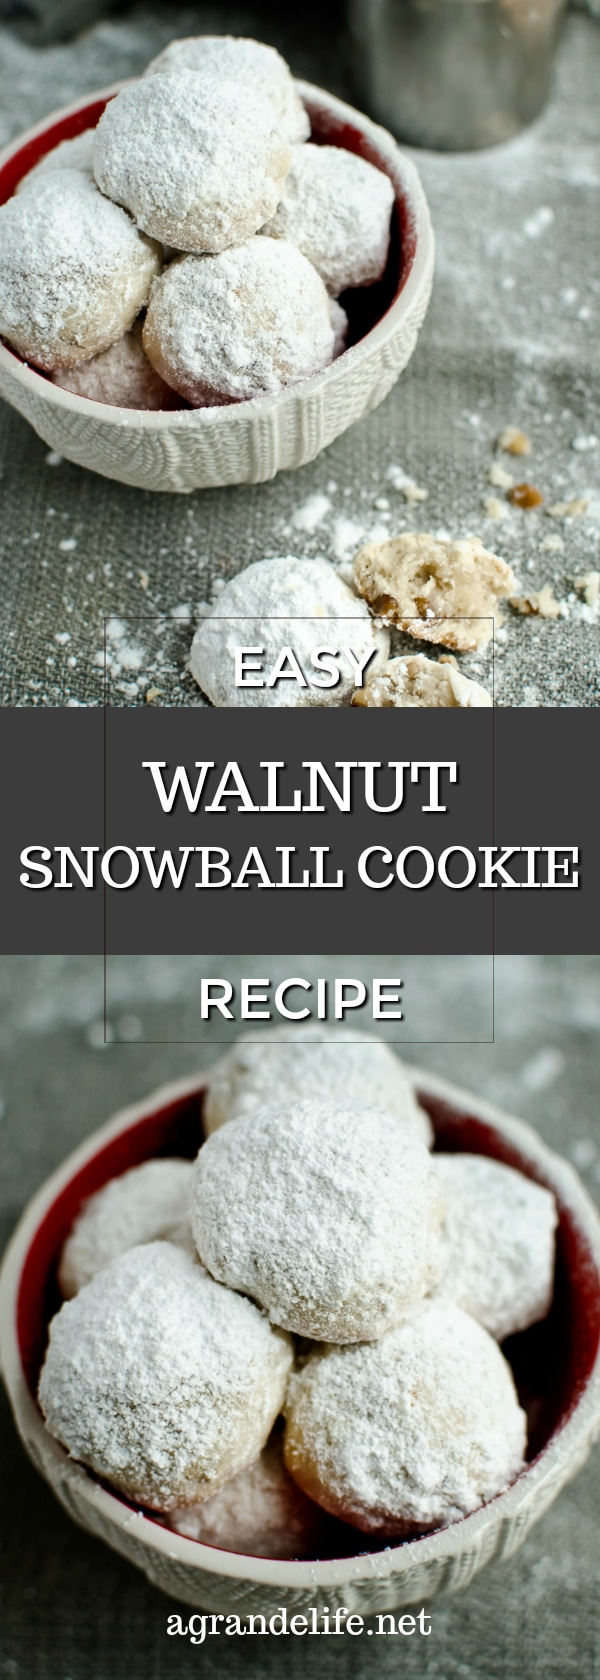 How to Make Chocolate Chip Snowball Cookies images